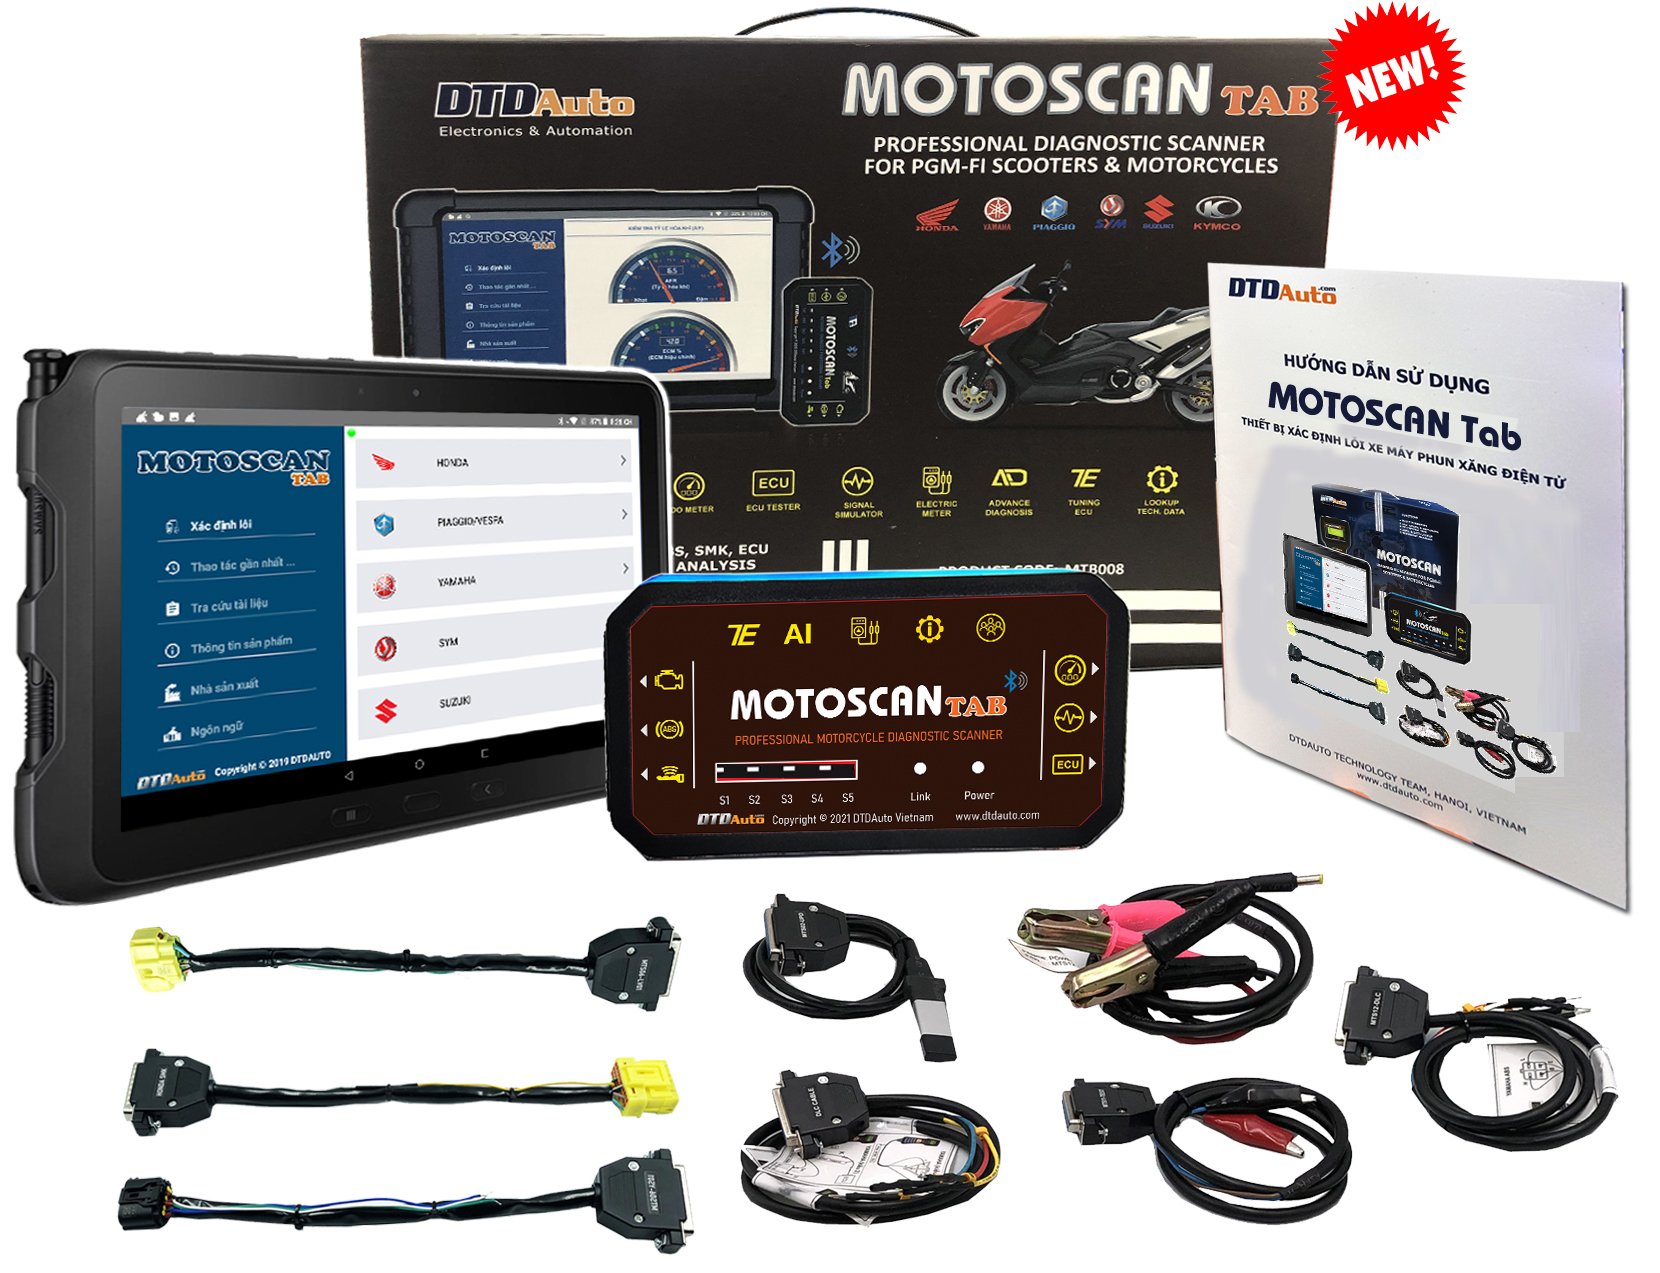 MOTOSCAN TAB - SMART DEVICE TO DIAGNOSE, REPAIR ELECTRONIC AND ELECTRICAL SYSTEMS FOR NEW GENERATION MOTORCYCLES  RELEASED IN FEBRUARY, 2021